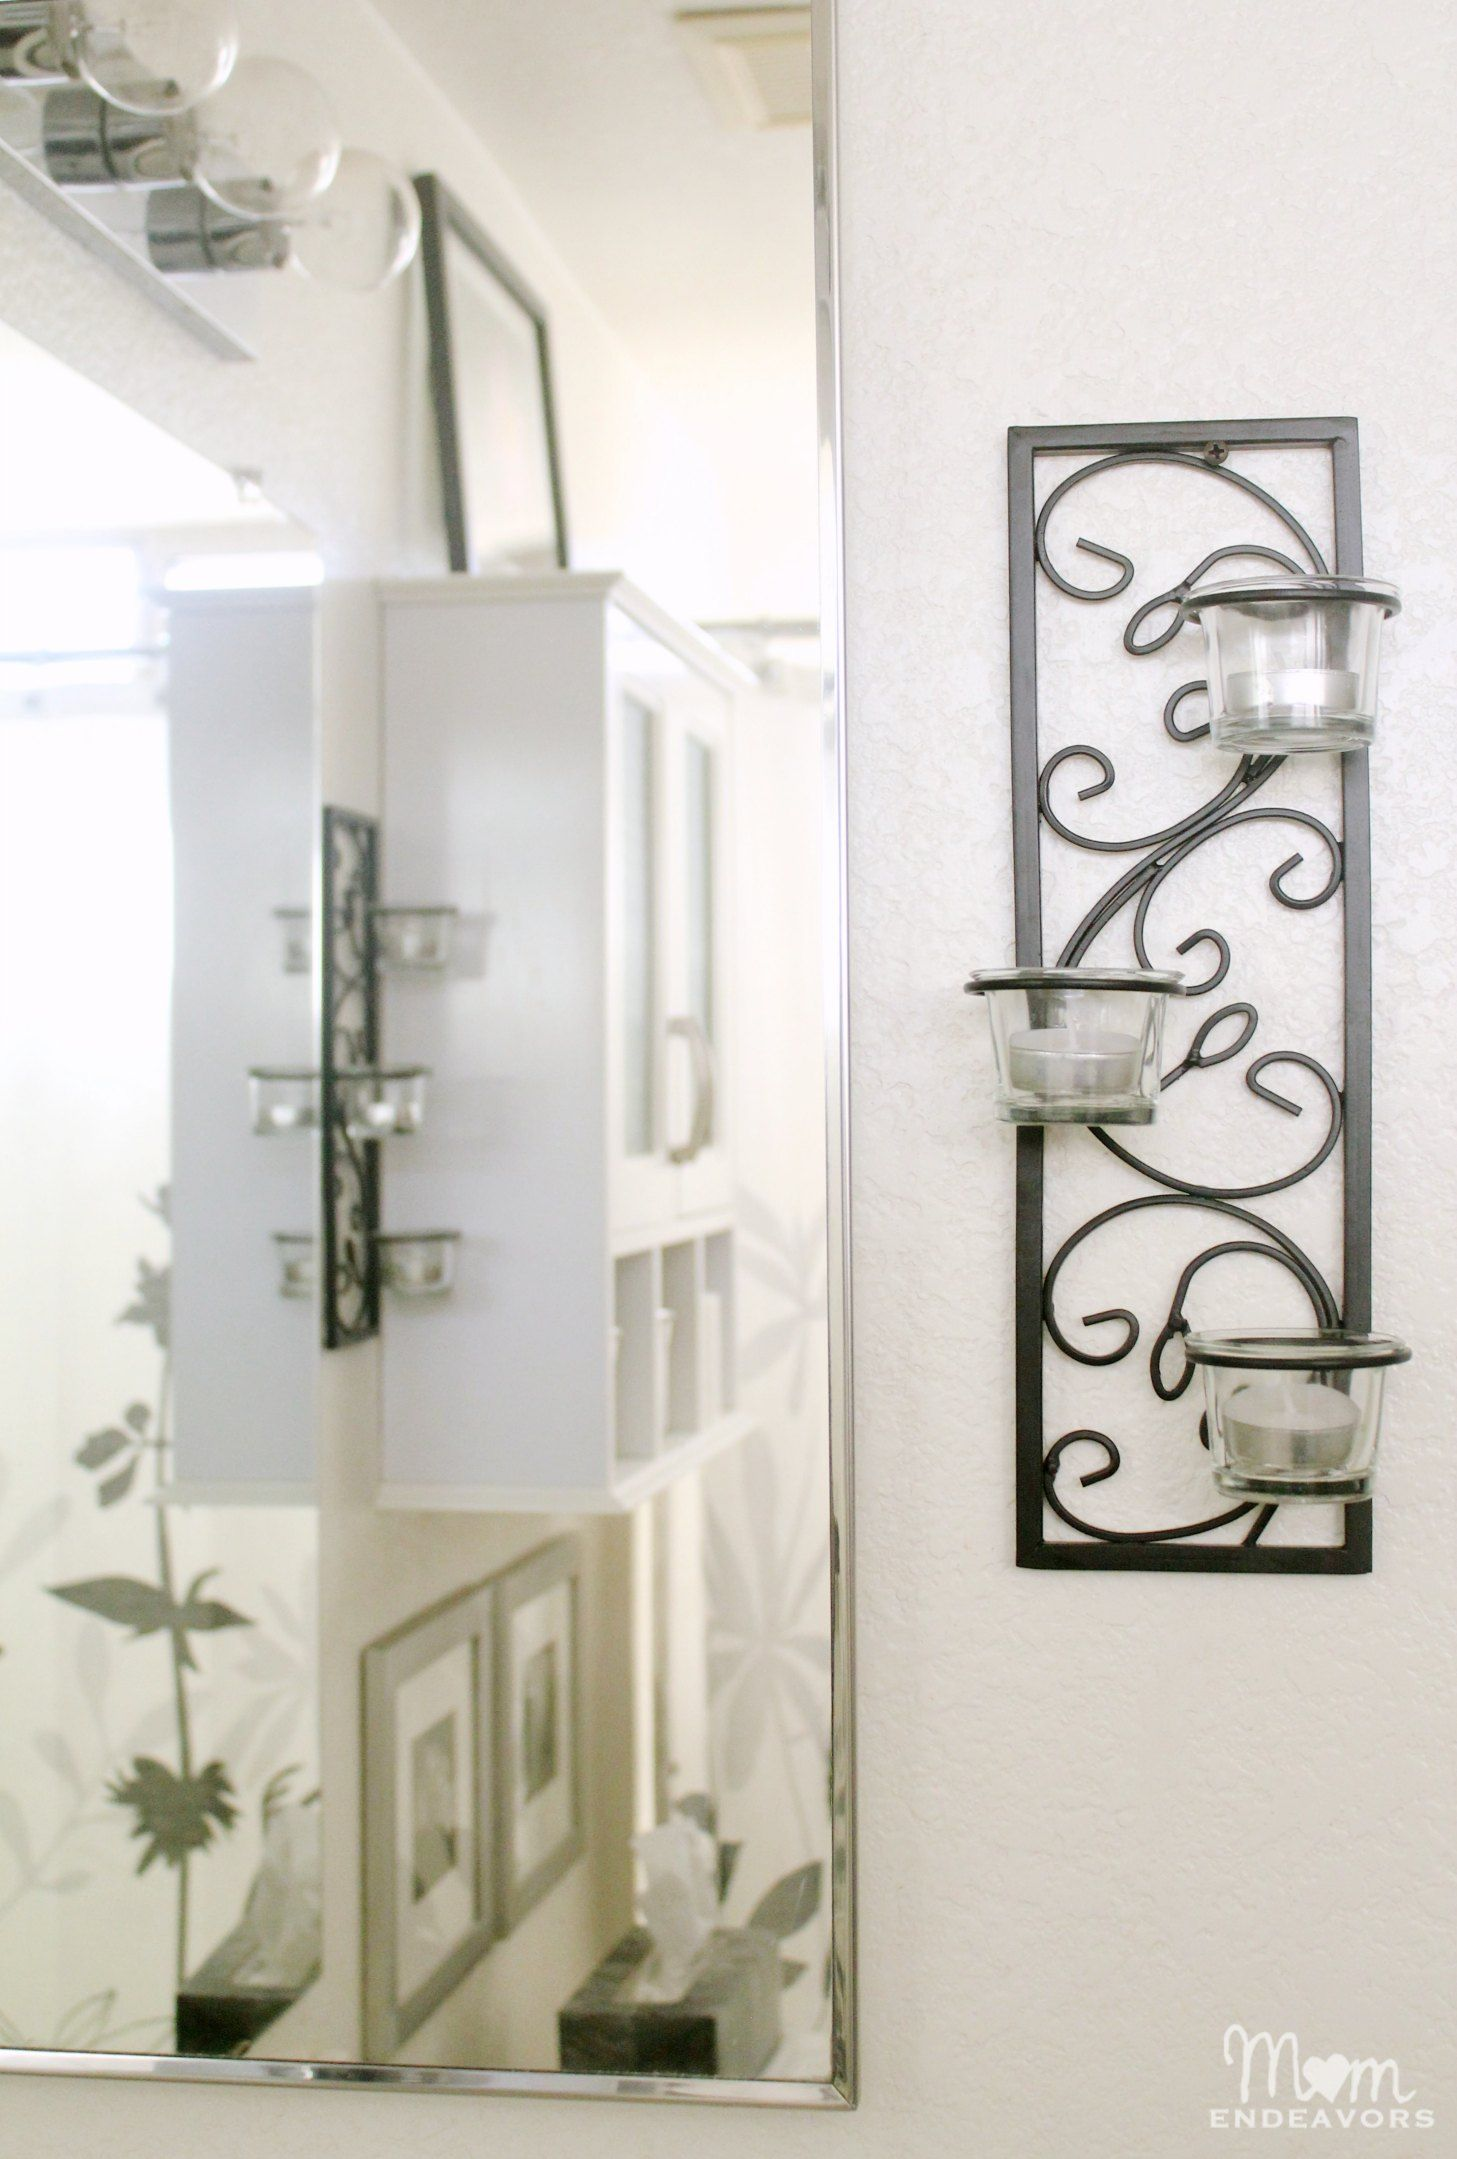 Candle Wall Sconces Can Work In The Bathroom To Add Some Wall Gorgeous Small Wall Sconces For Bathroom Decorating Inspiration